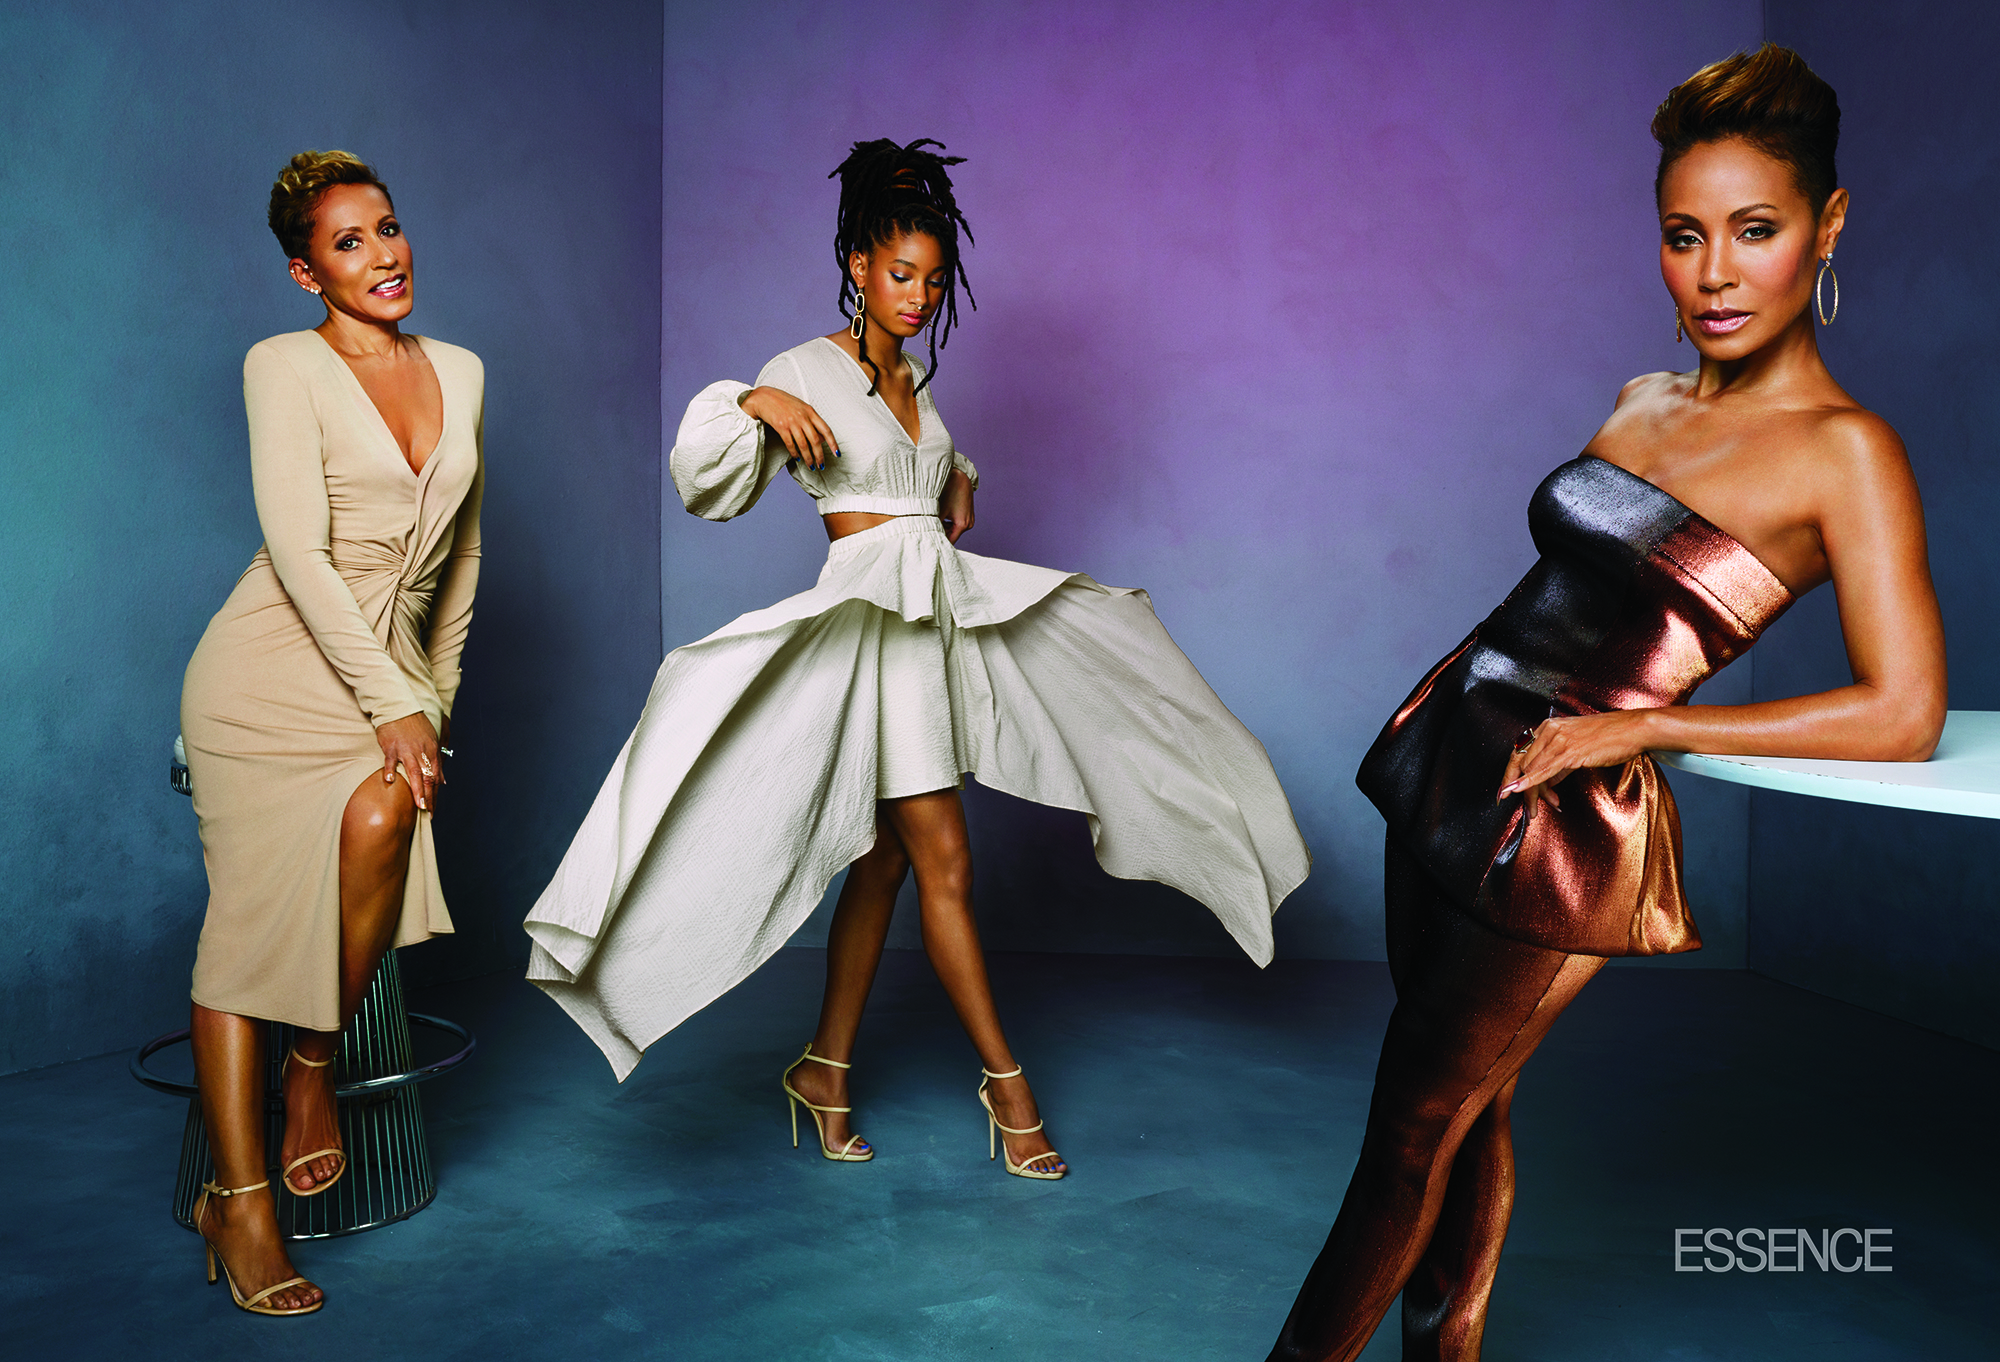 Jada Pinket Smith, Willow Smith, Adrienne Banfield-Norris, Essence Magazine